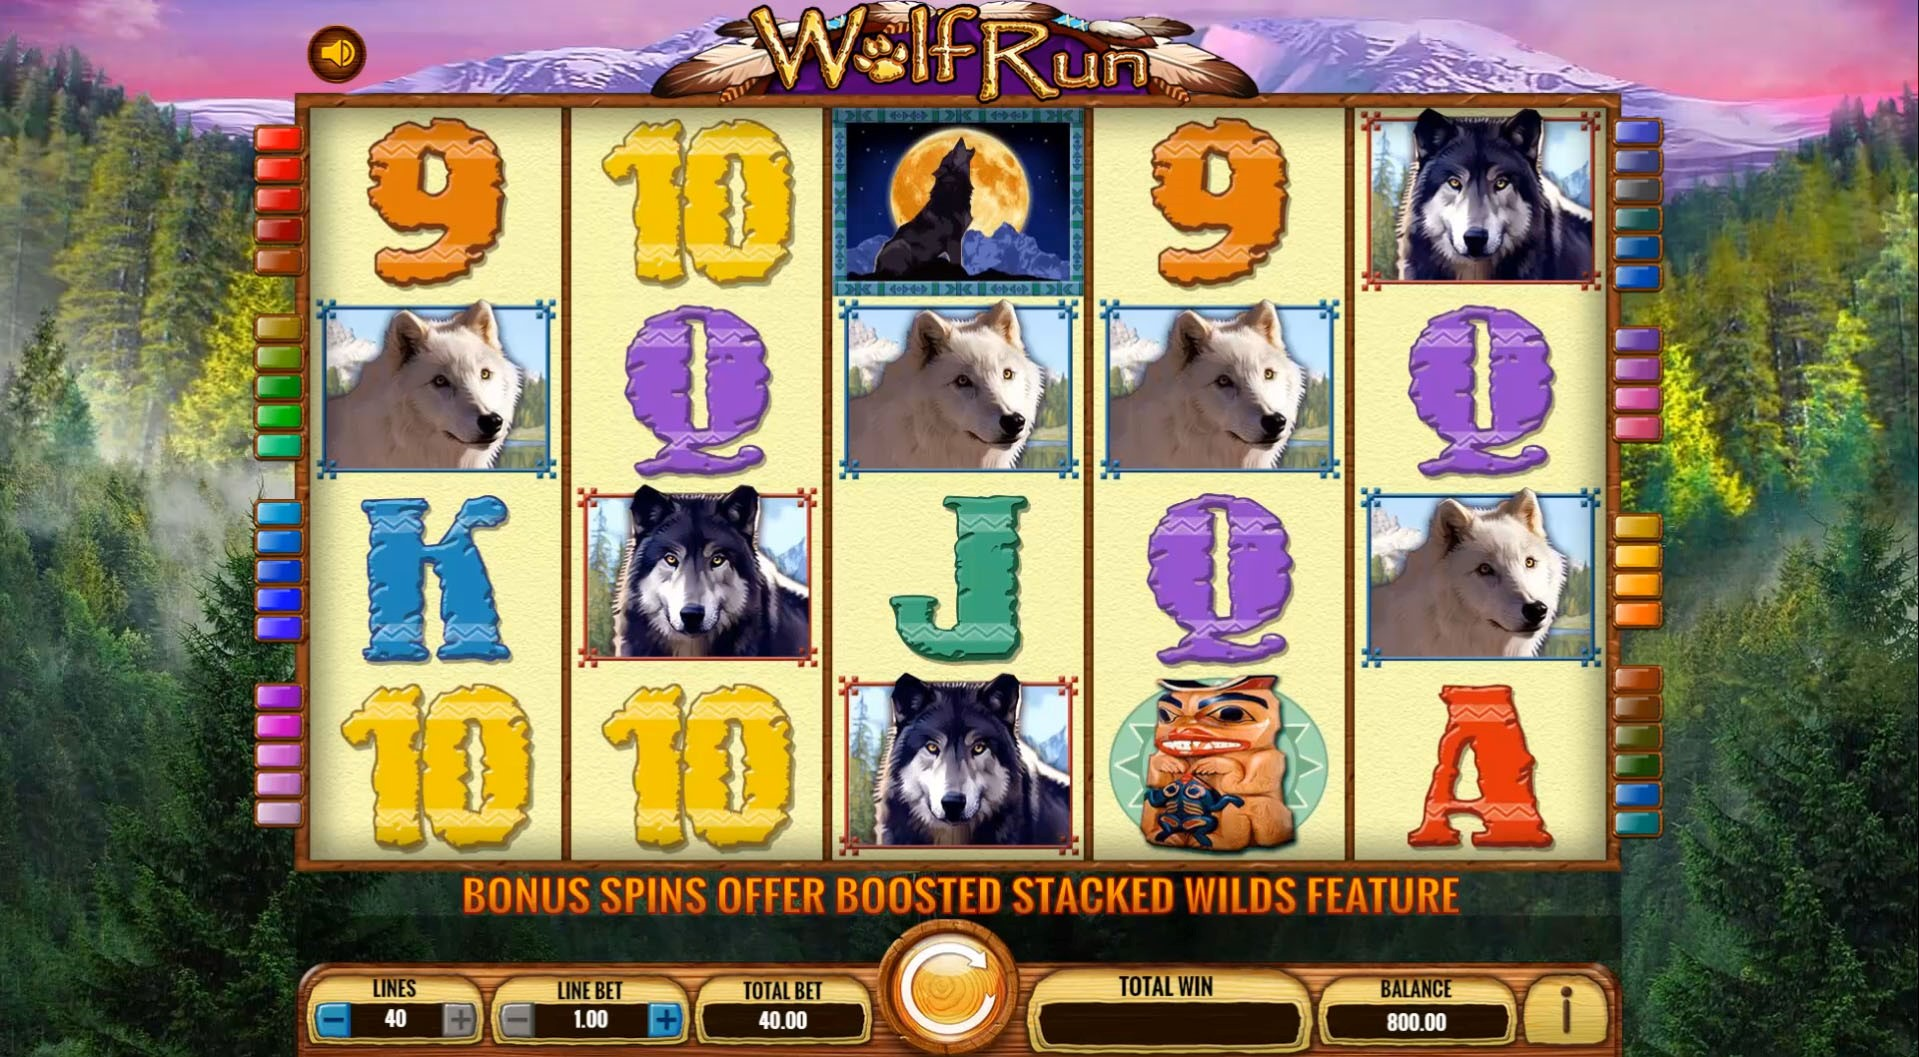 Bet up to 40 lines in PlayOJO's Wolf Run online slot game from game provider IGT